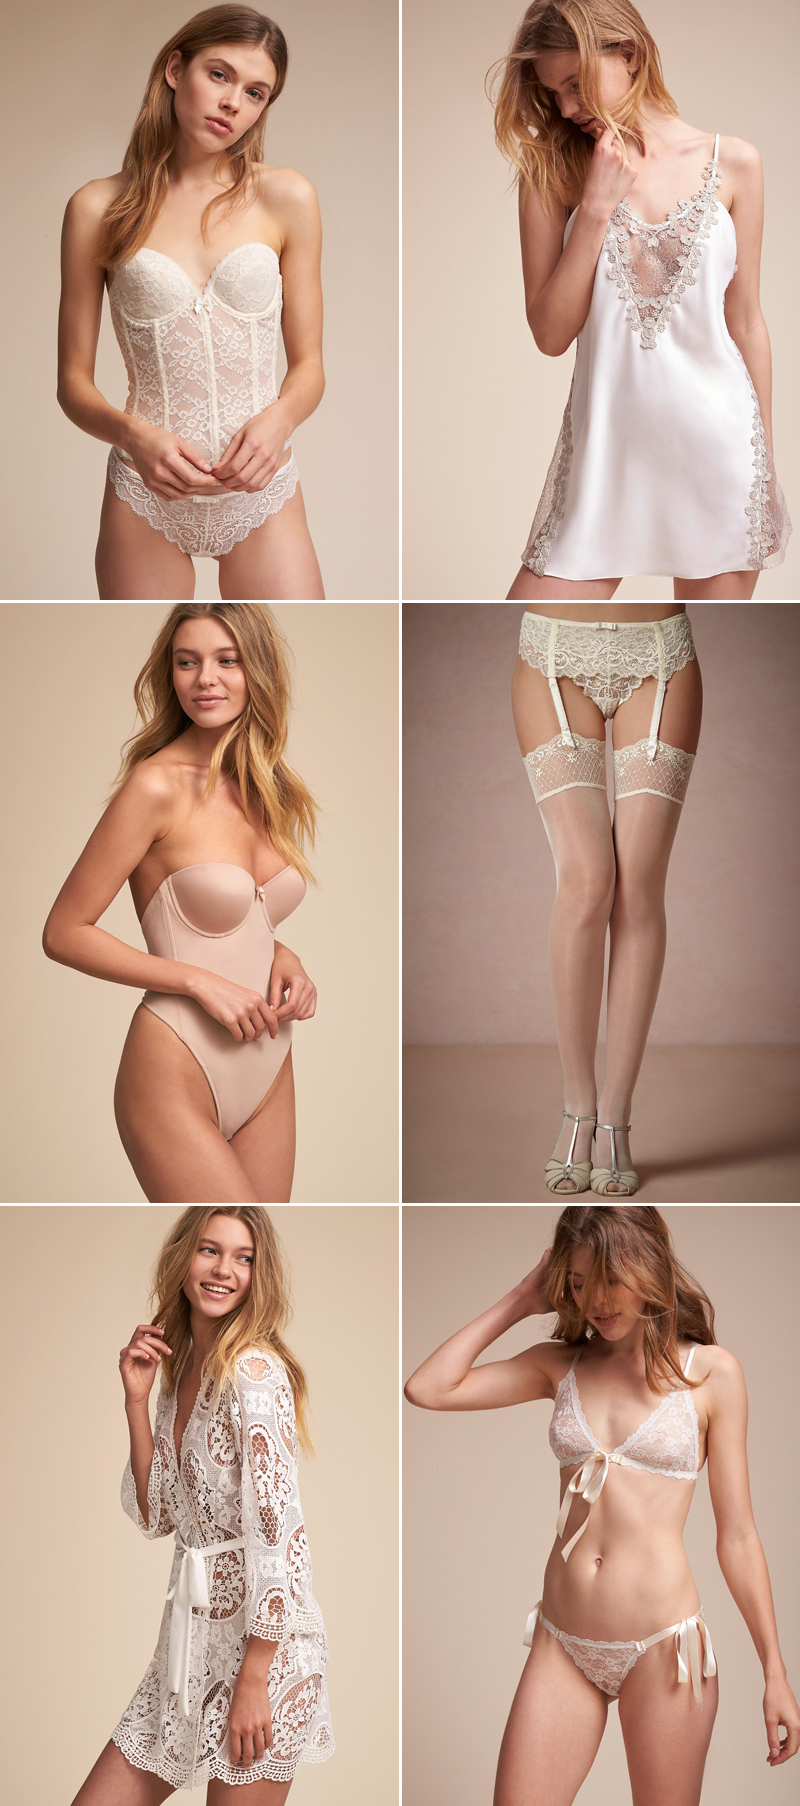 12-Bridal Lingerie (BHLDN)